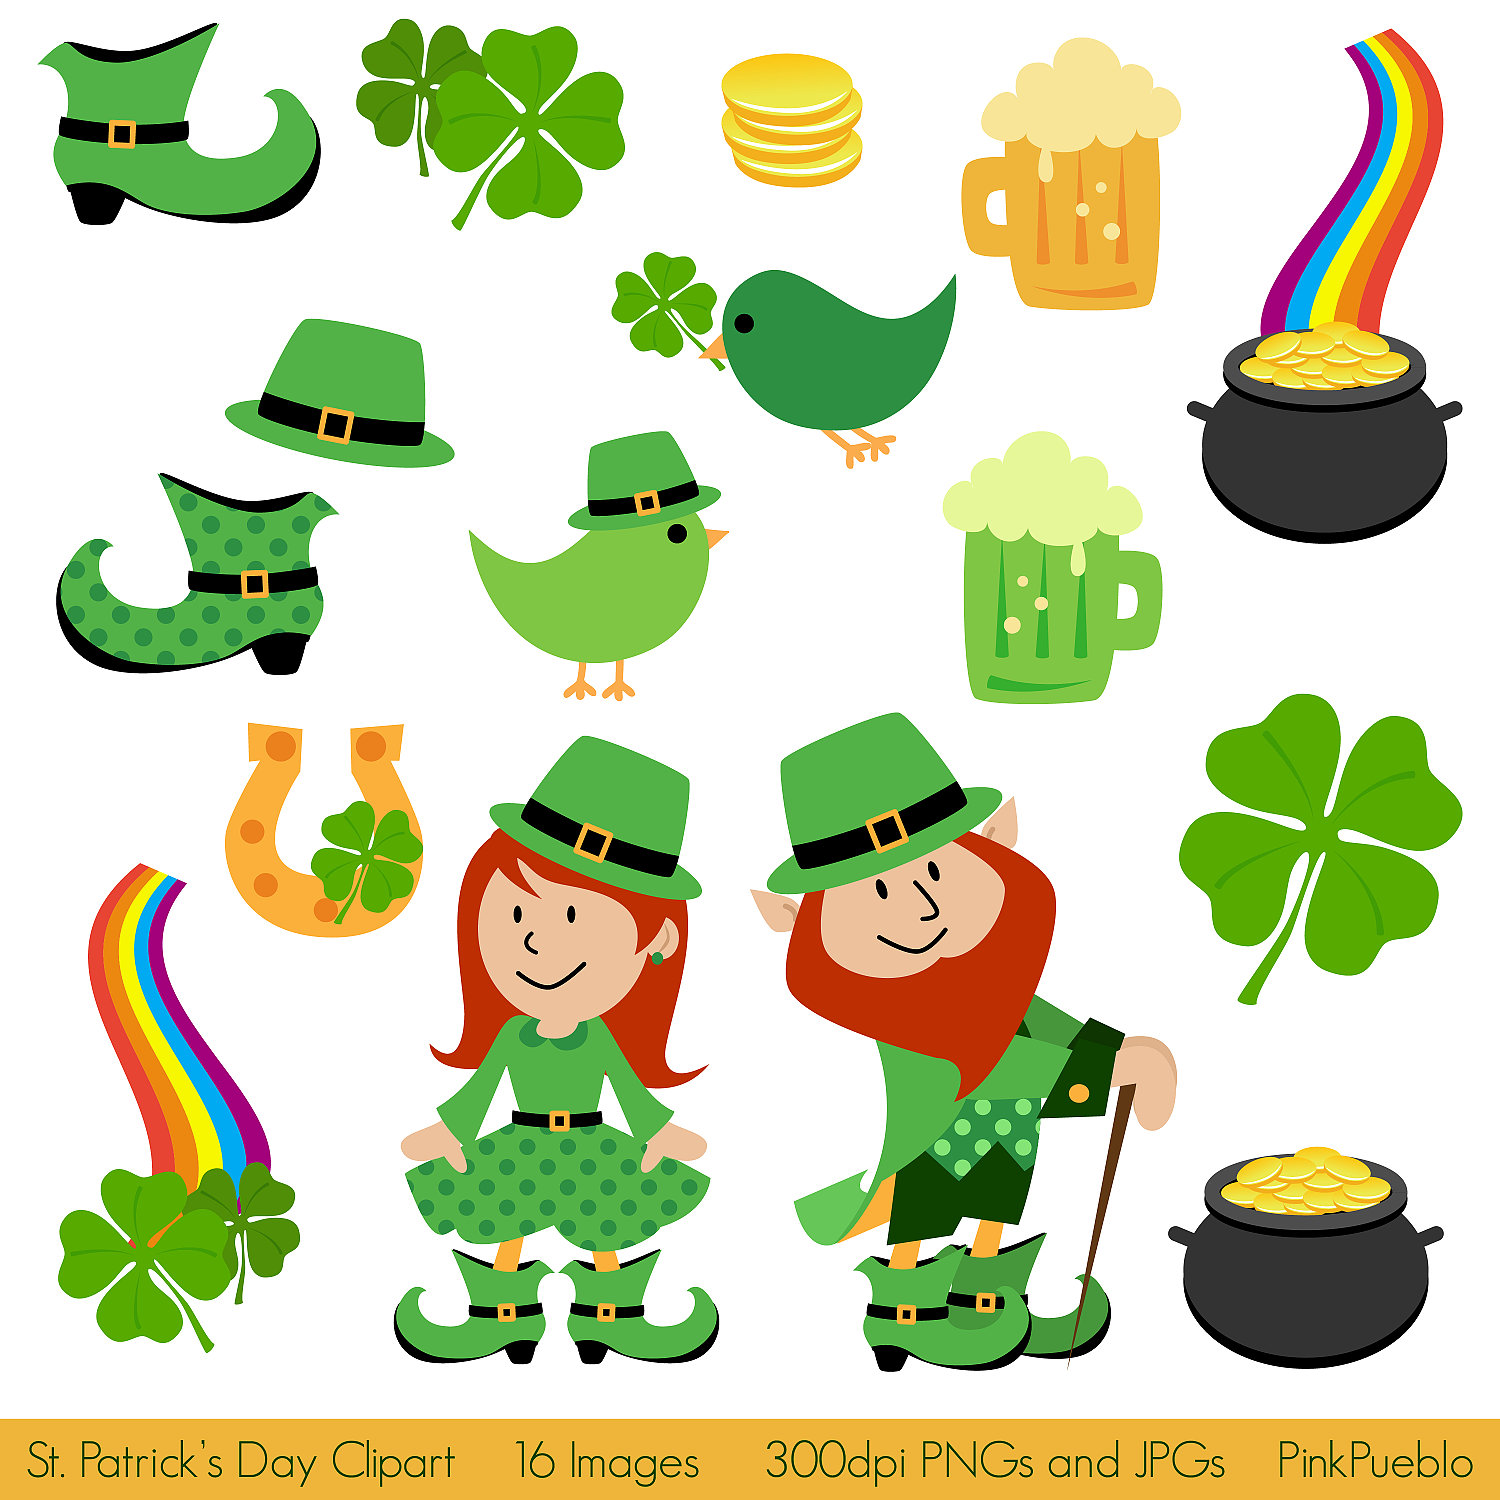 st patrick s day clipart clipart panda free clipart images rh clipartpanda com st patrick's day clip art clipart st patrick's day clip art pictures